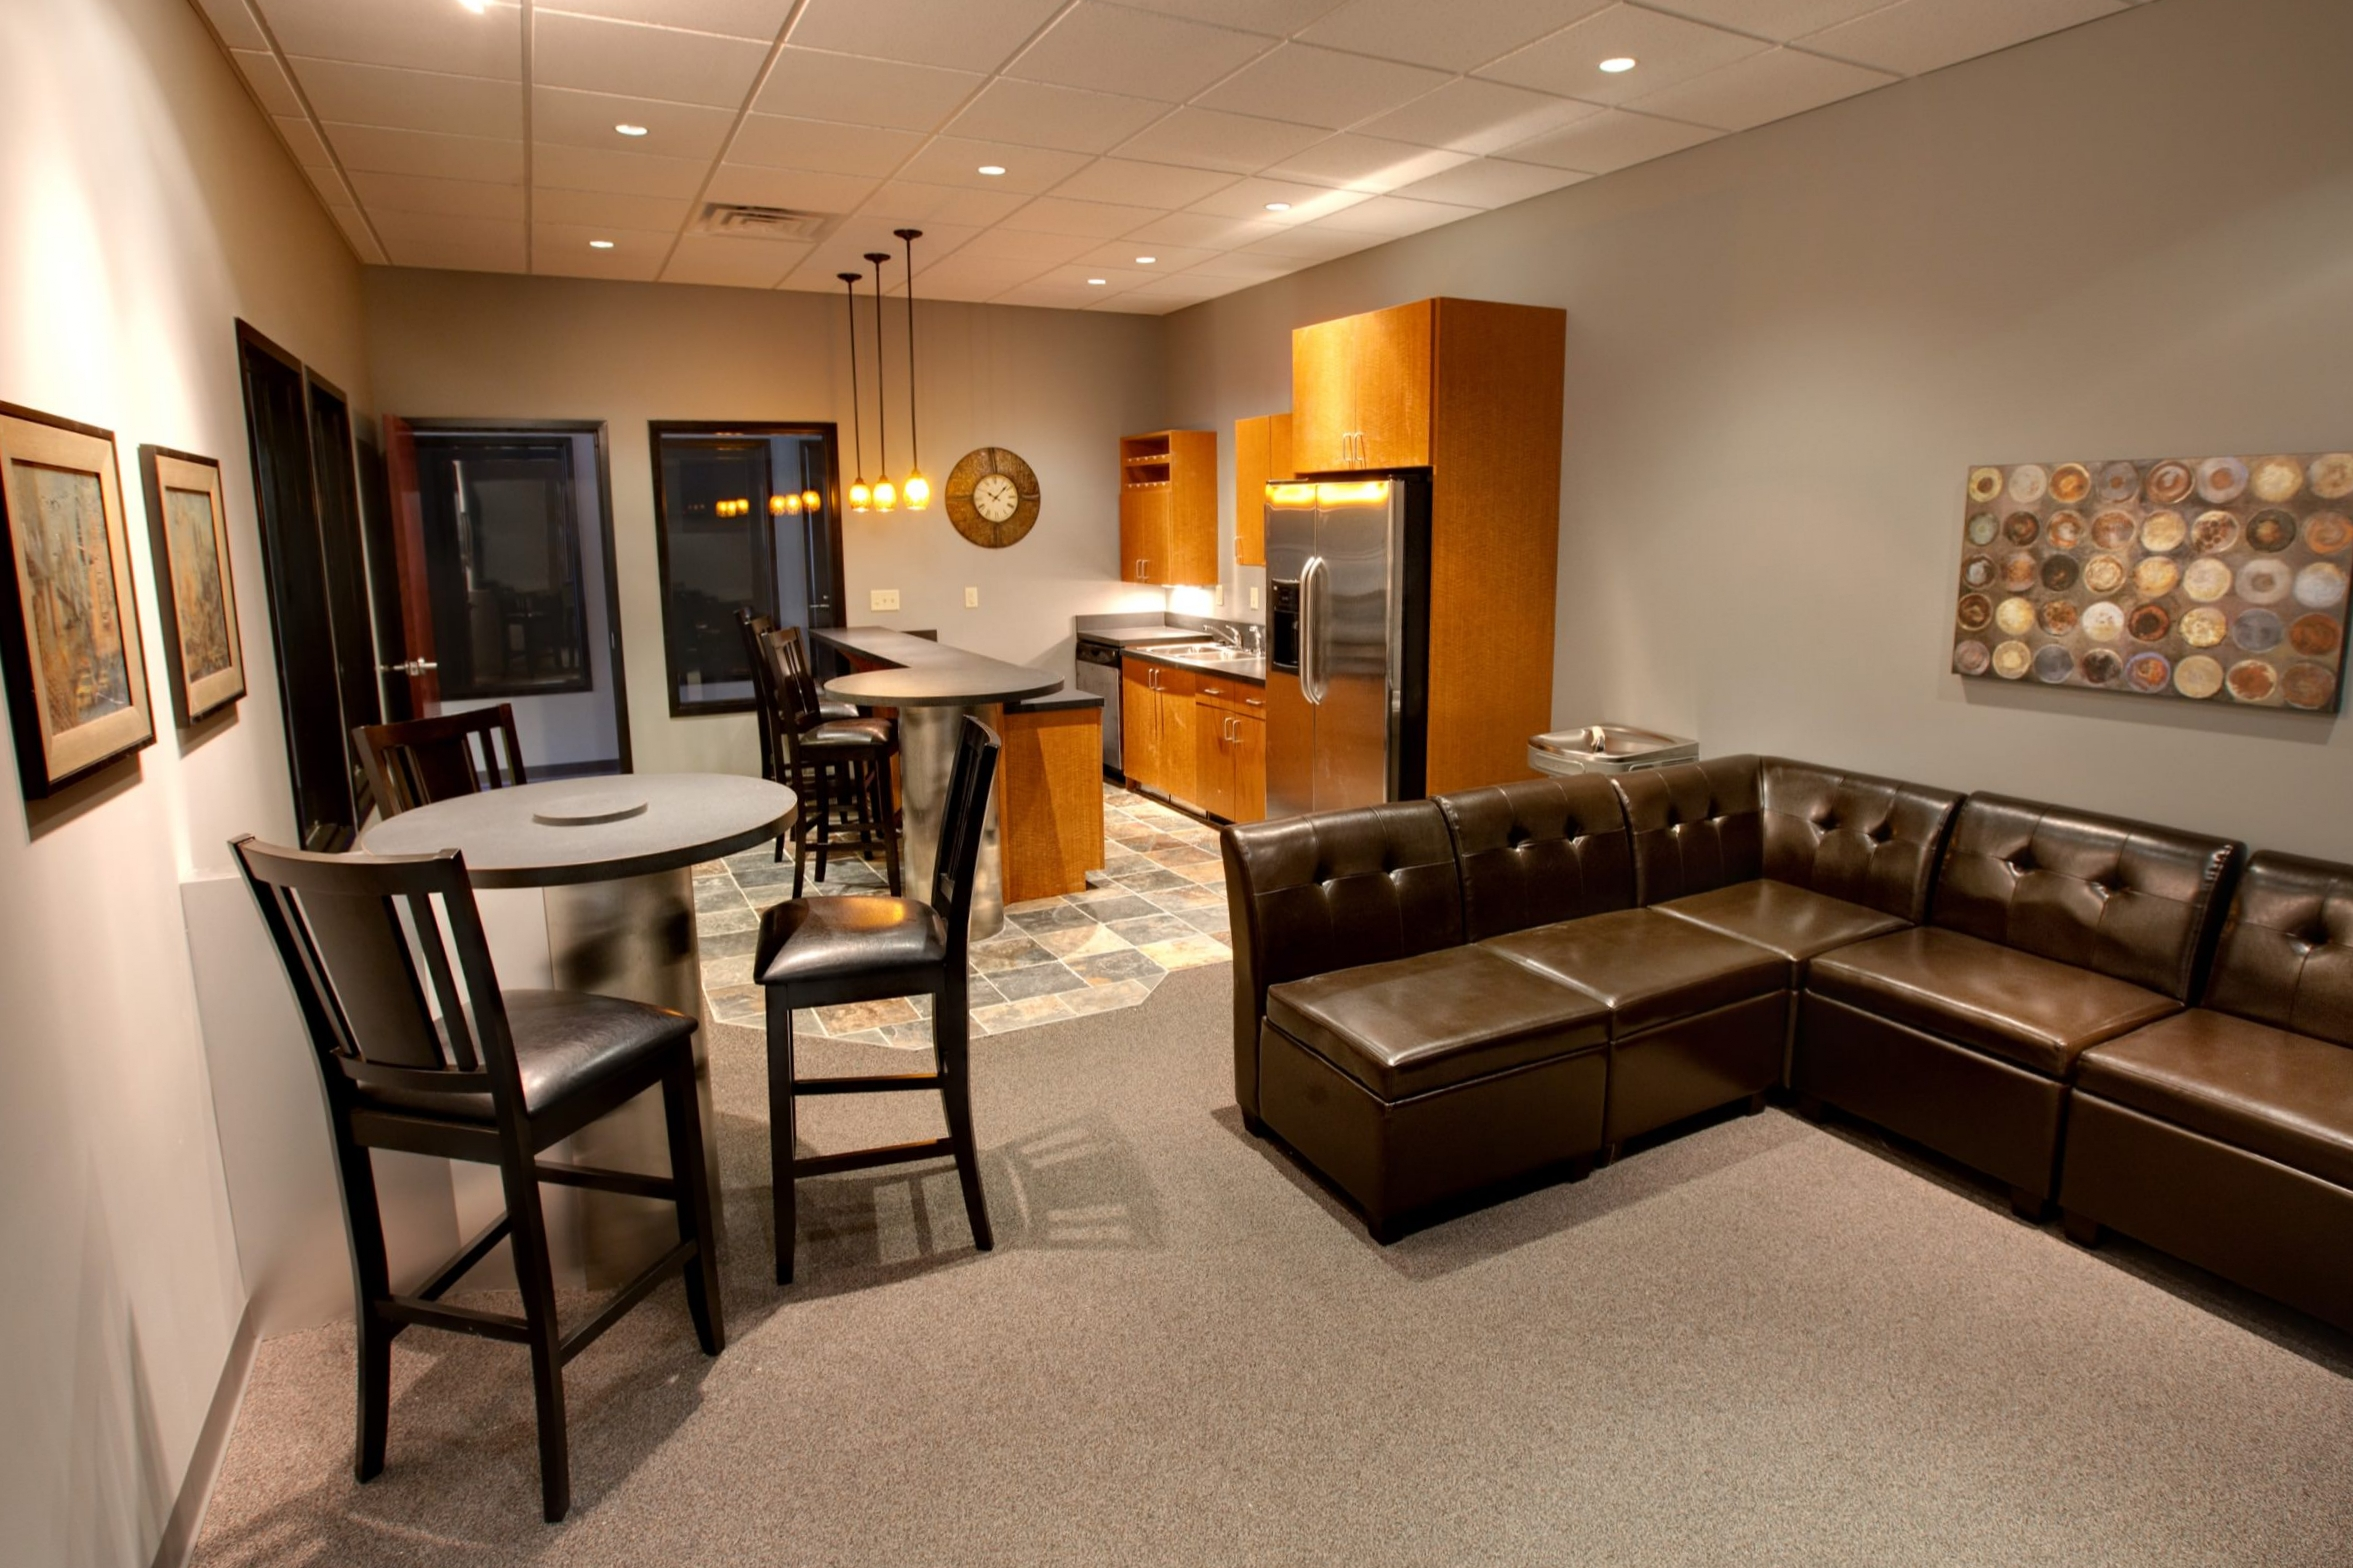 Lounge and kitchen area in office at West College office park